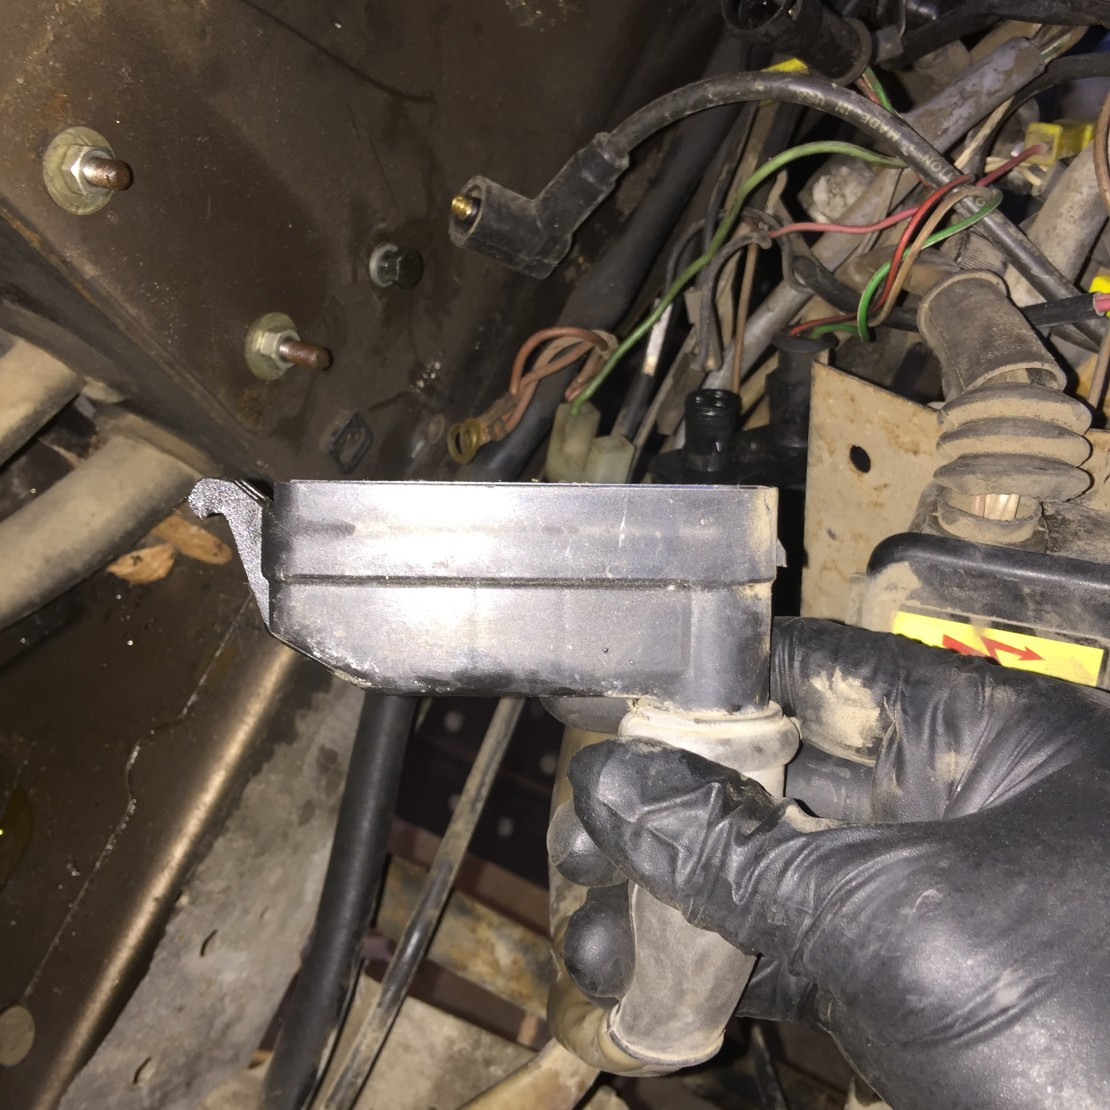 wbx-and-transaxle-removal-12.jpg